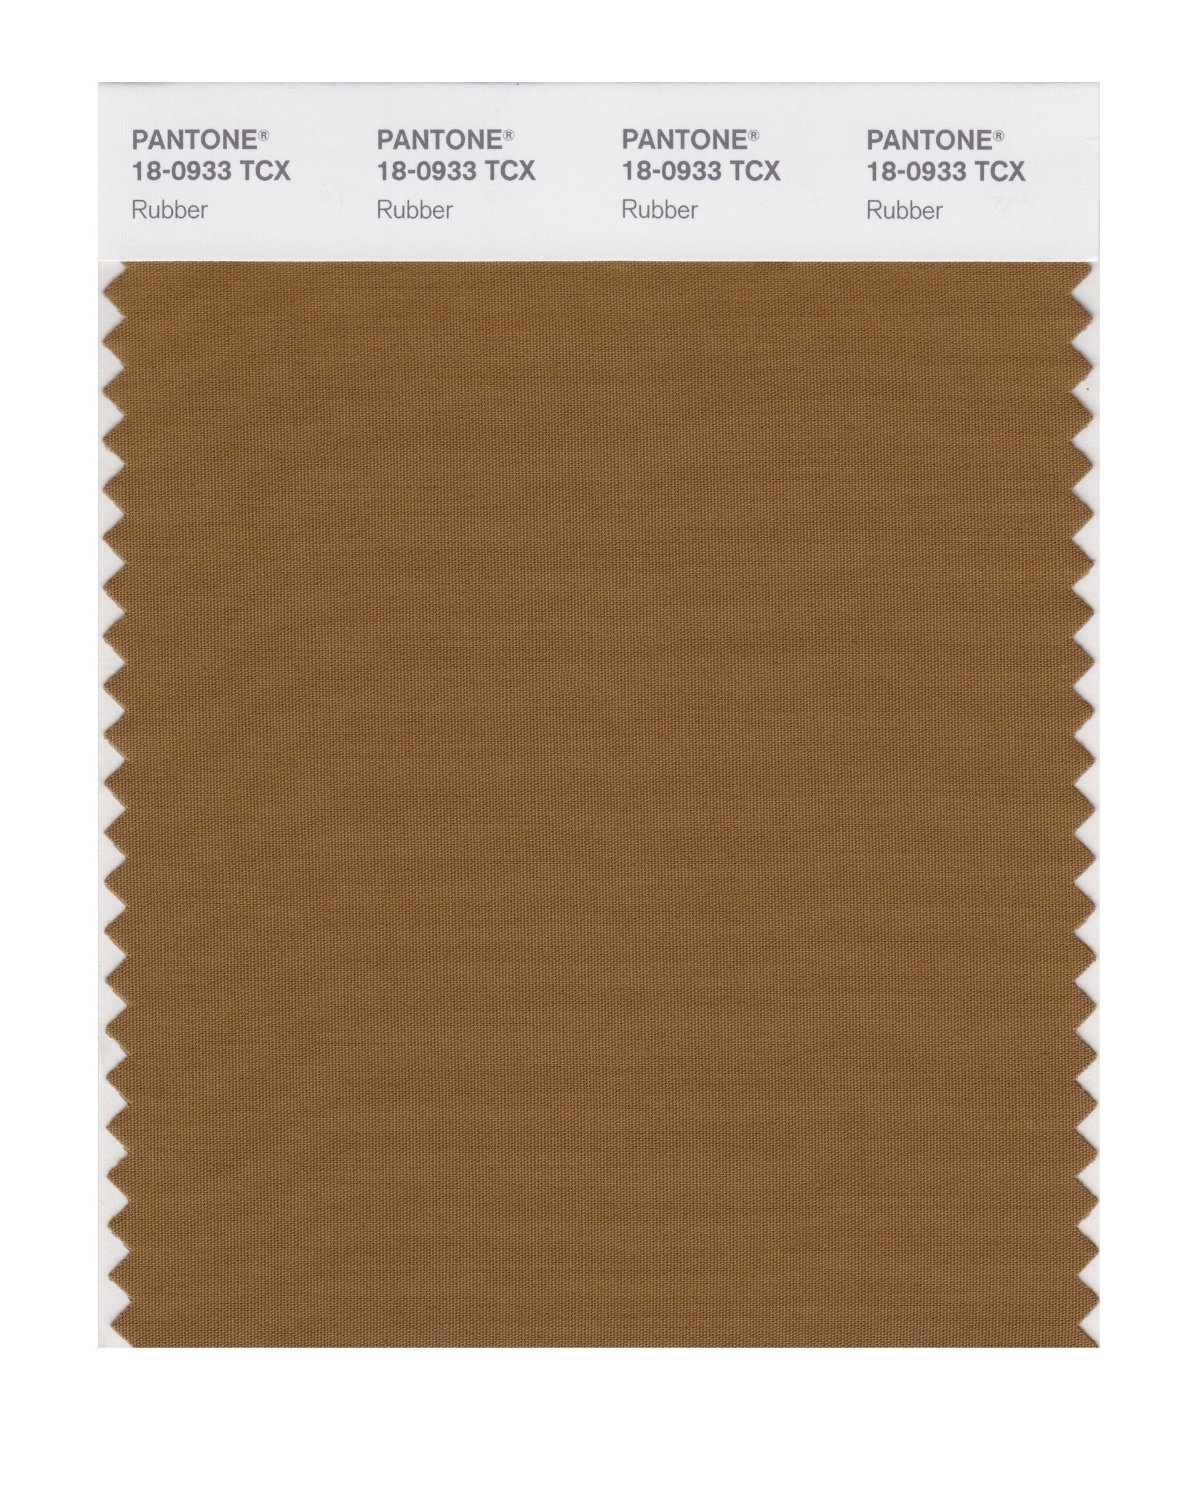 Pantone Smart Swatch 18-0933 Rubber